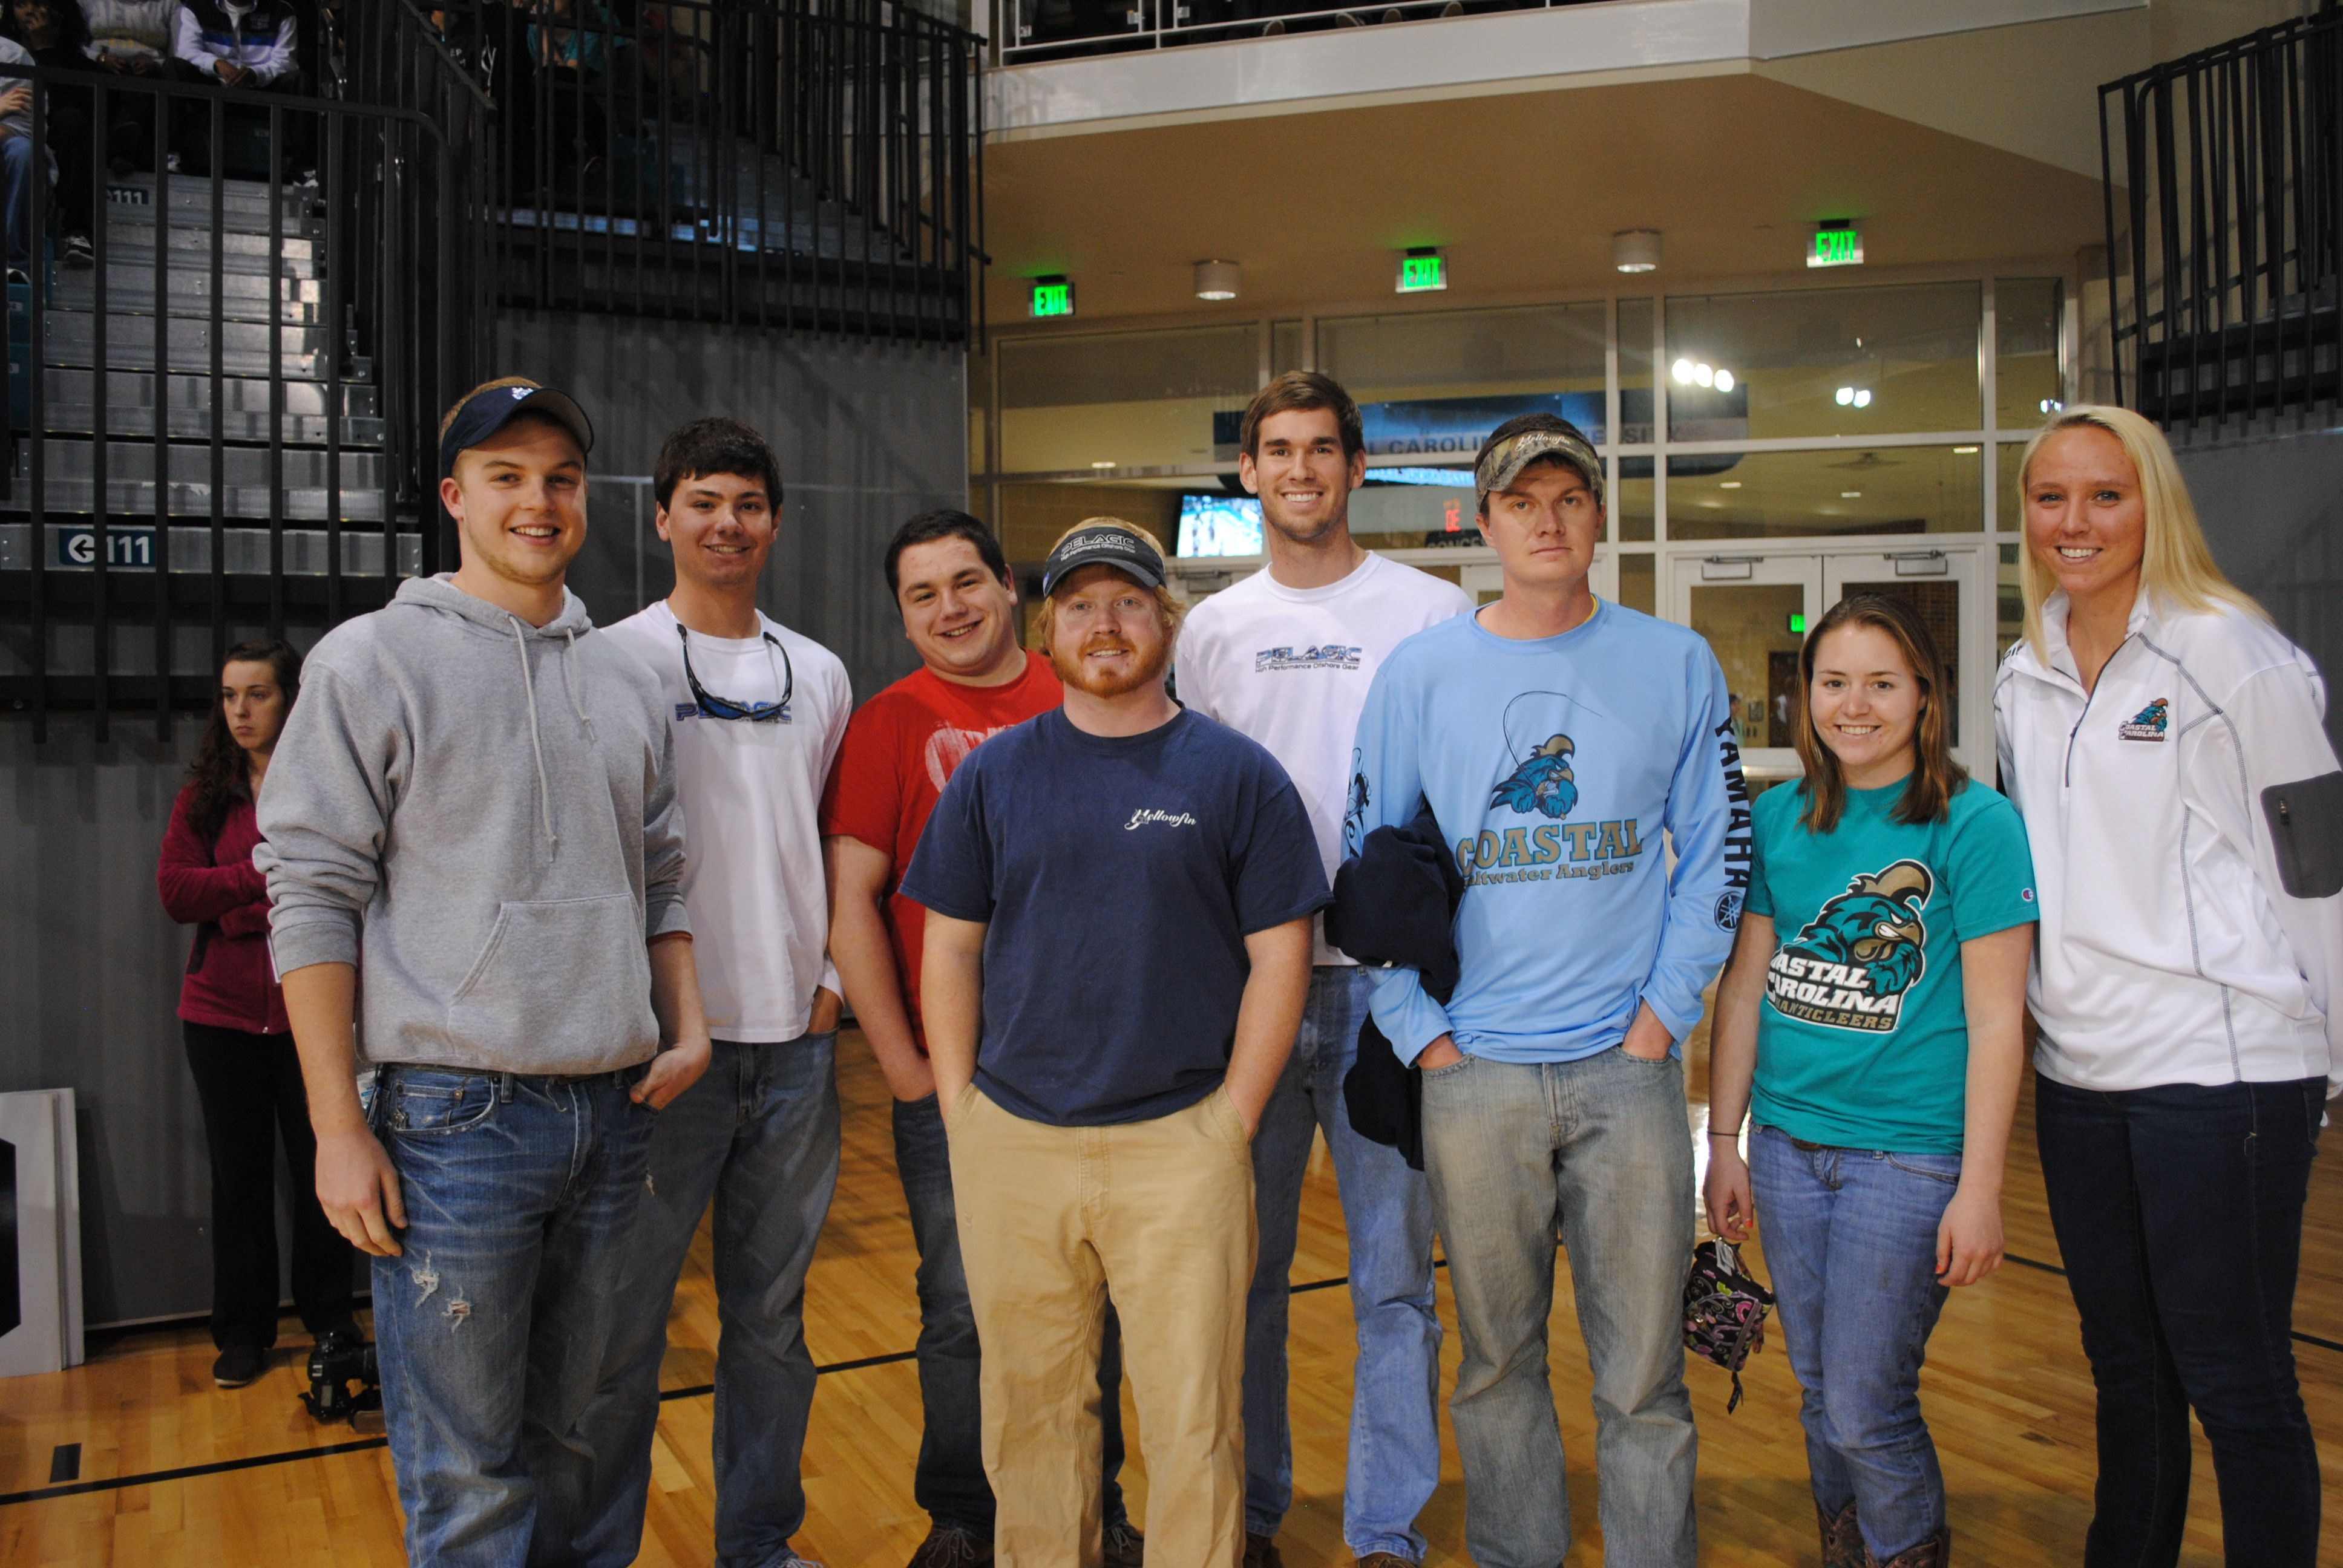 Ccu Angler Club Being Presented At The Basketball Game Basketball Pictures Basketball Games Basketball Rules